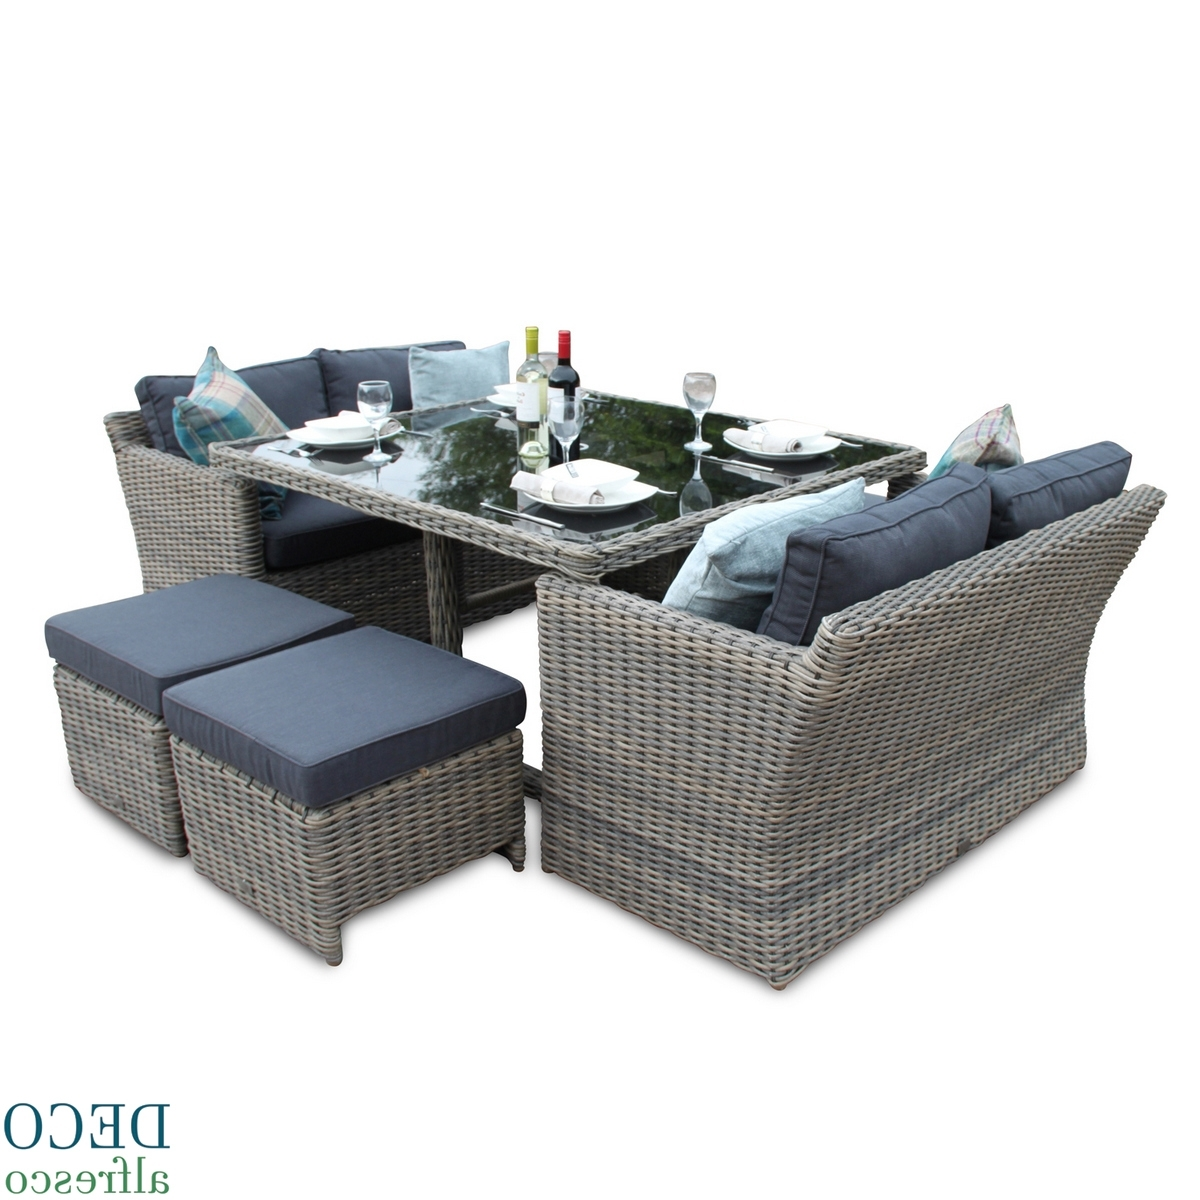 2017 Cube Dining Tables throughout 8Pc High Back Sofa Cube Rattan Furniture Set - Natural Deco Alfresco